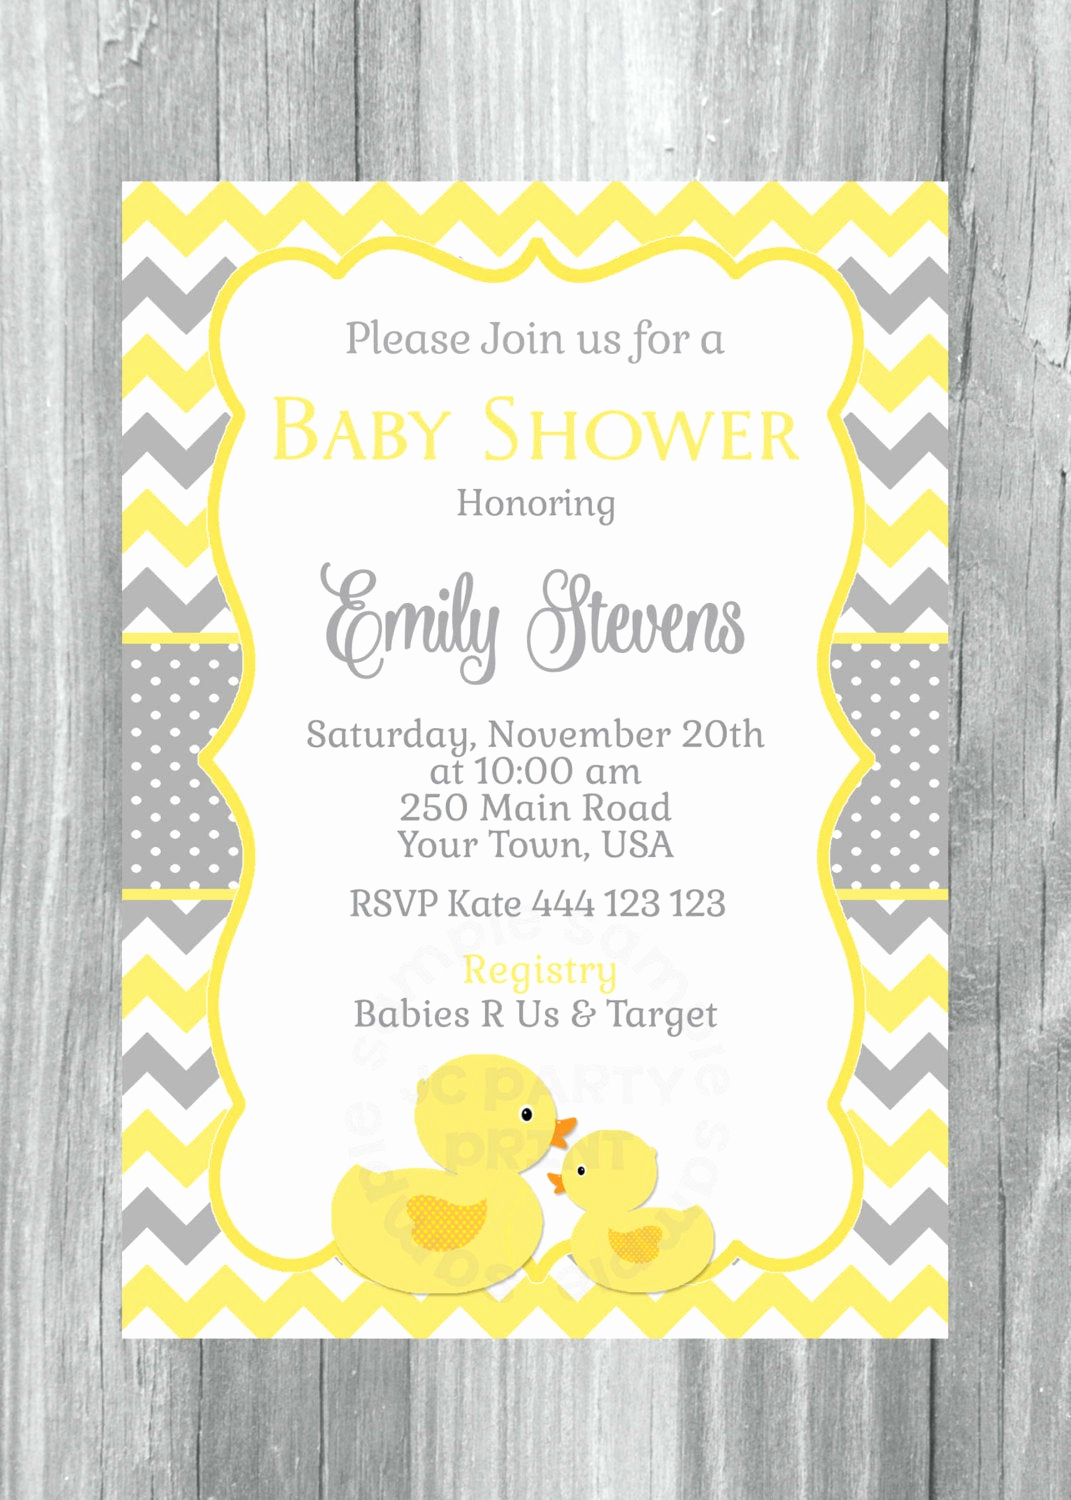 Rubber Ducky Baby Shower Invitation Awesome Rubber Ducky Baby Shower Invitation Rubber Duck Yellow and